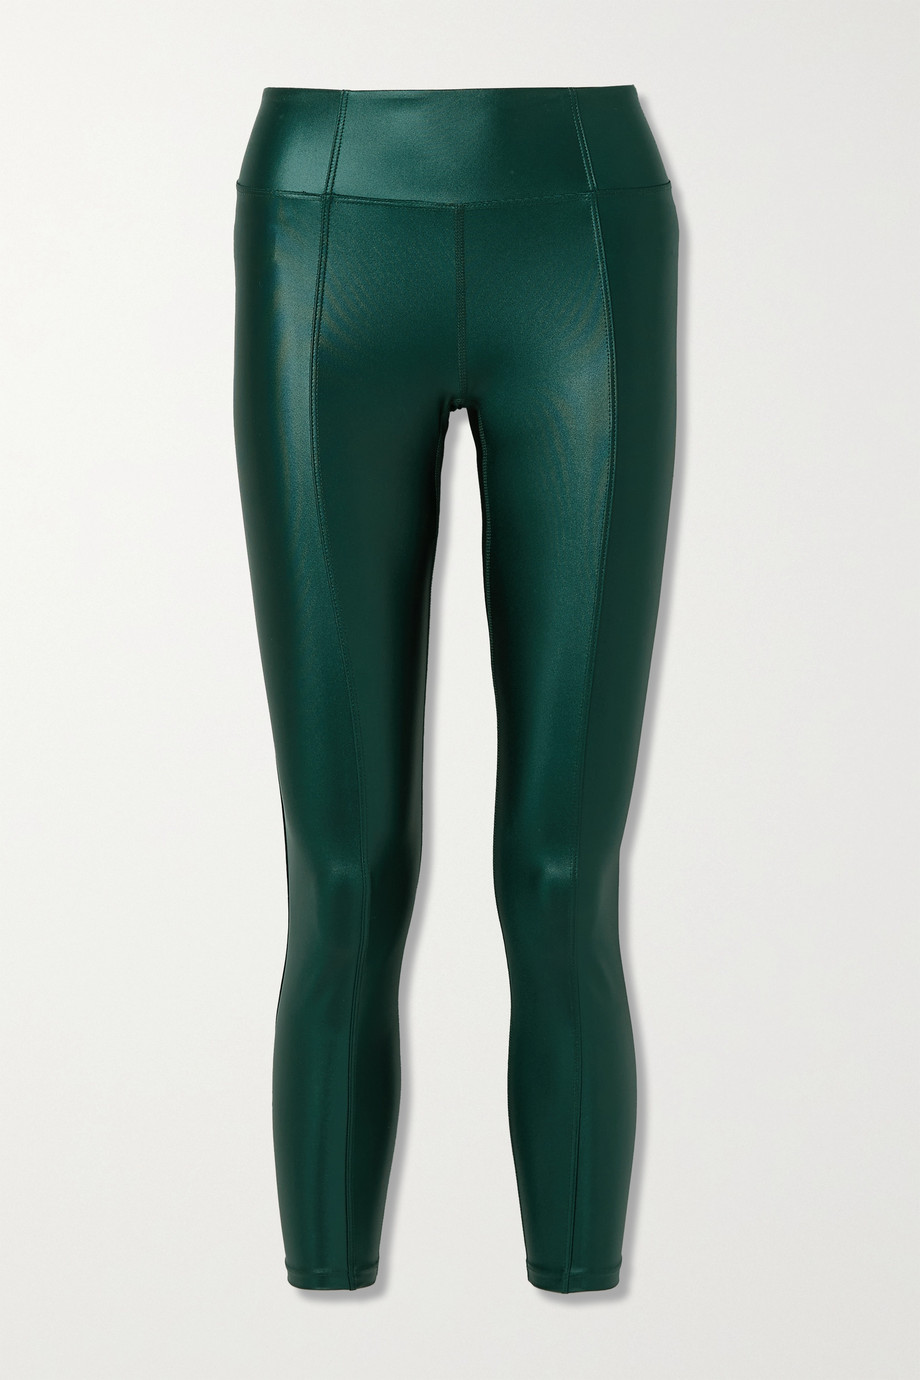 HEROINE SPORT Hampton metallic stretch leggings